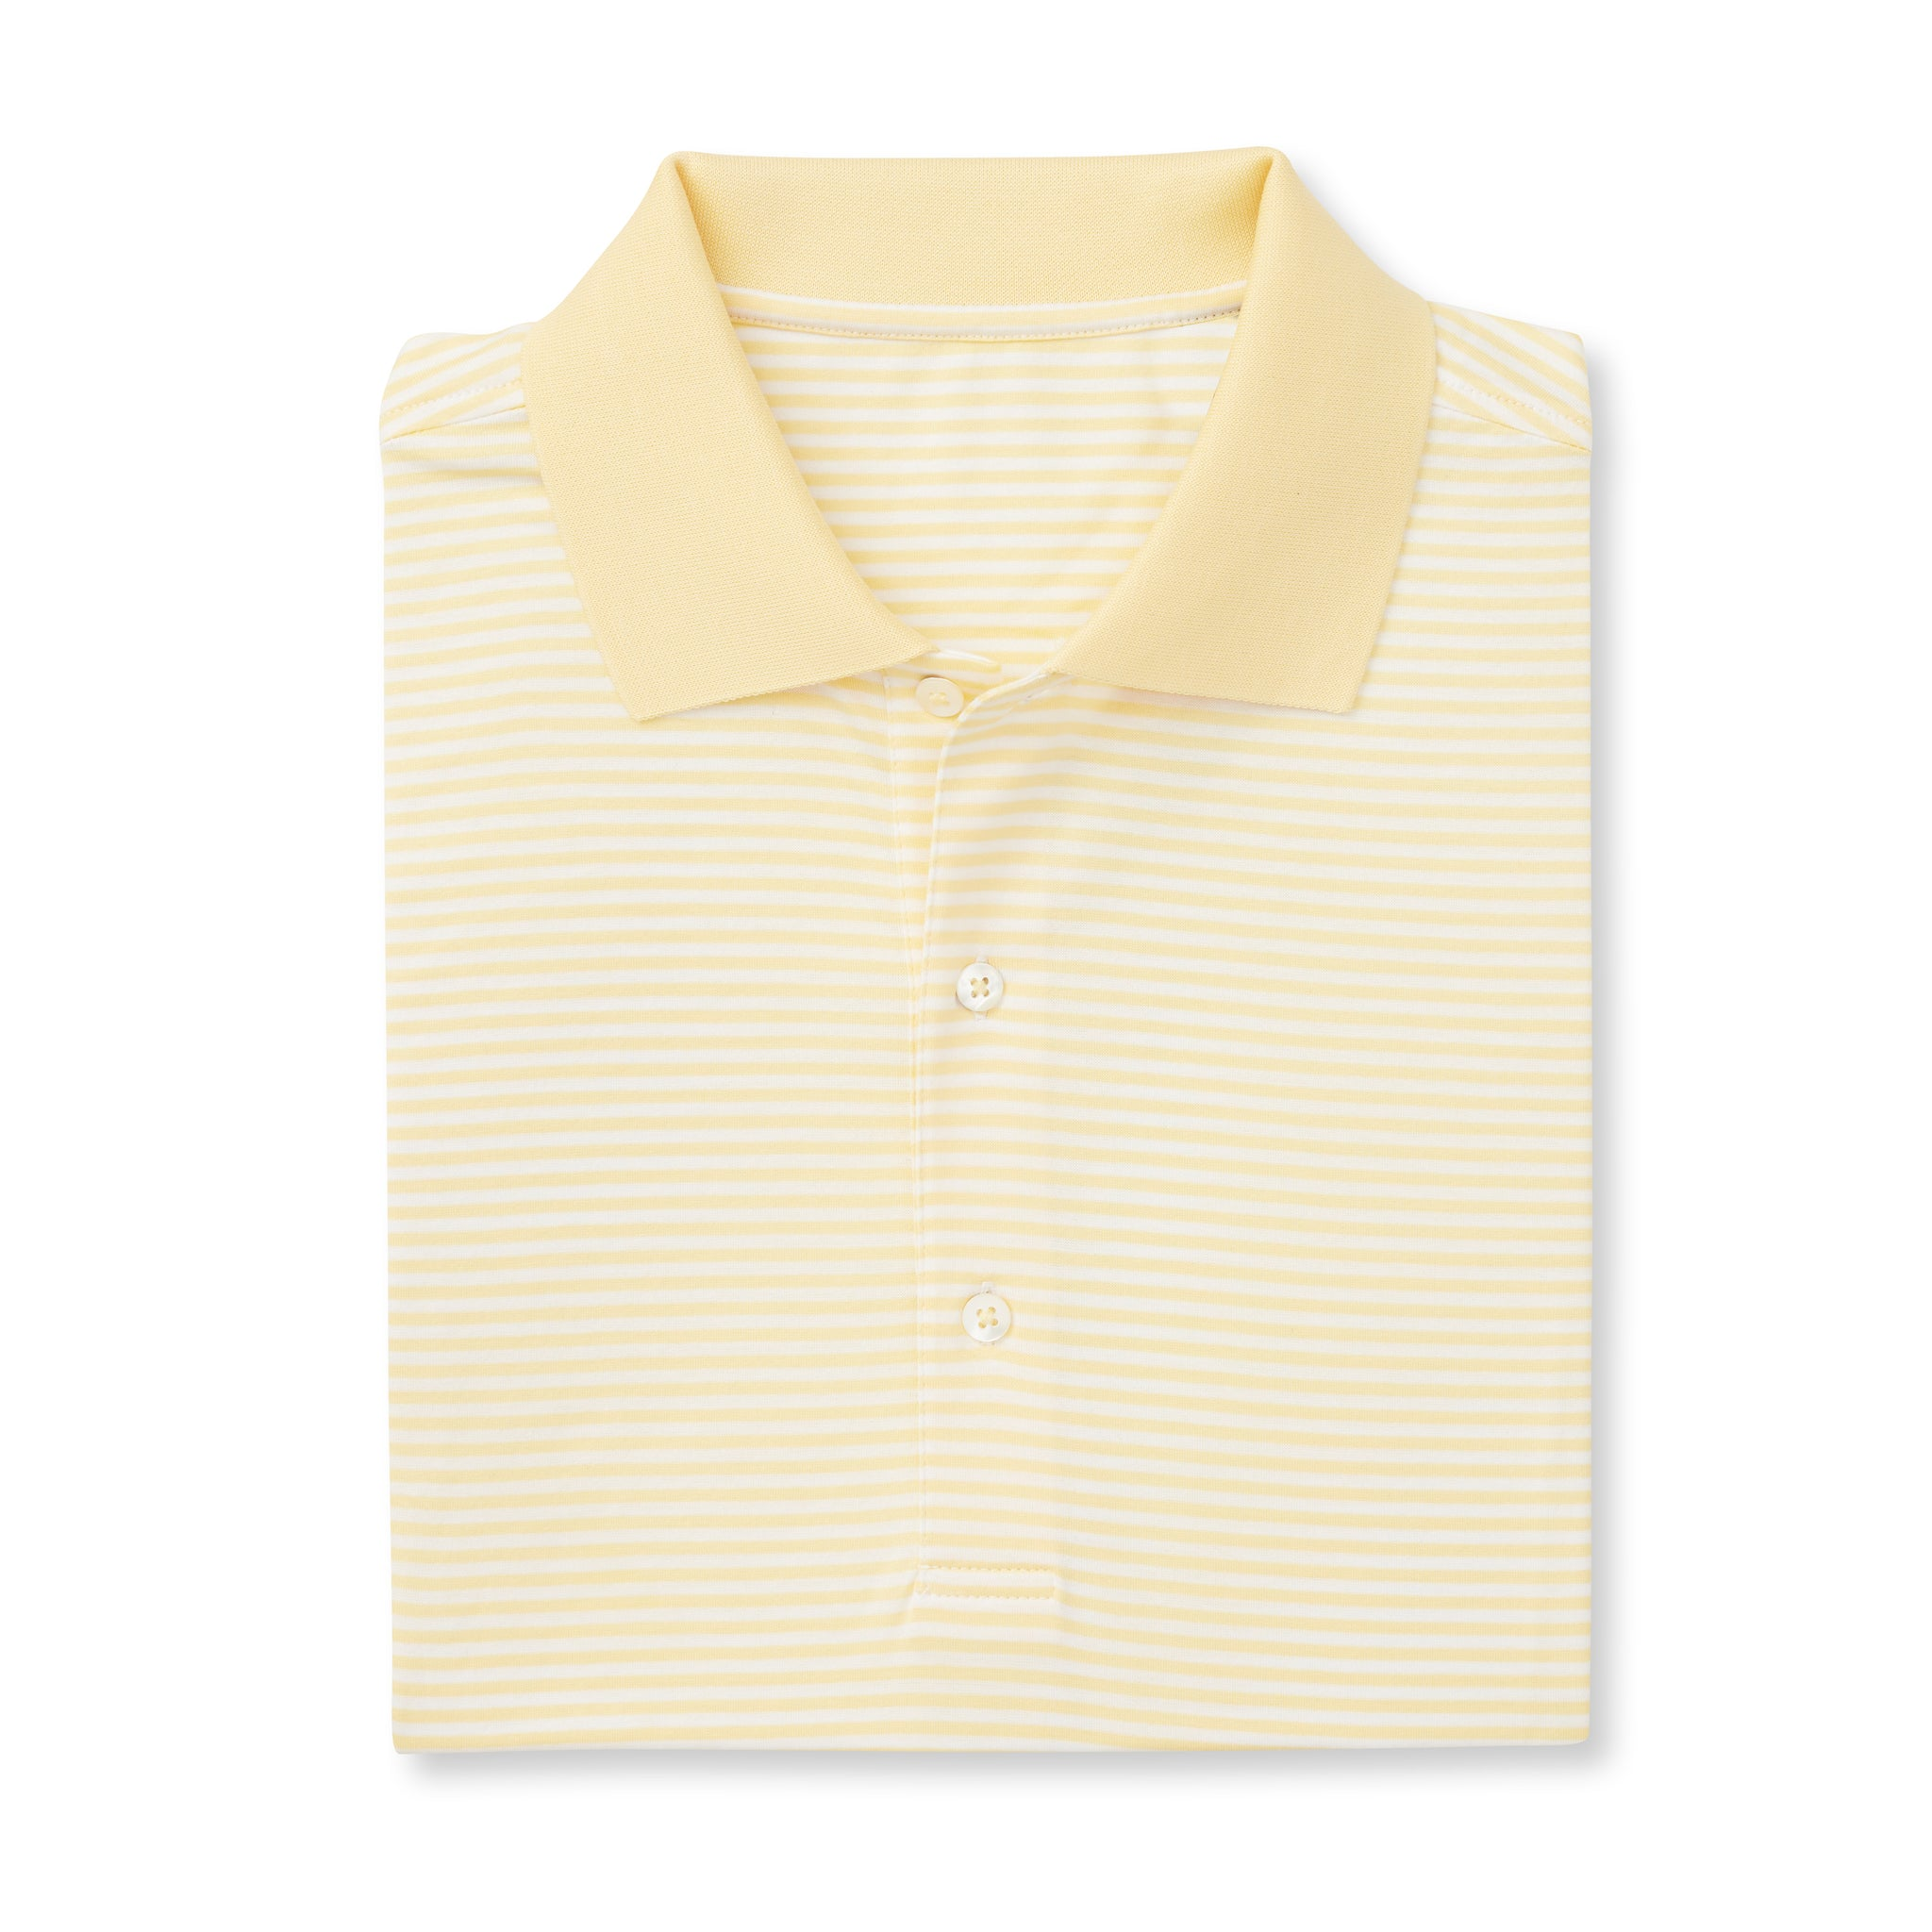 SUPIMA Stripe Short Sleeve Mercerized Polo - Yellow/White IS22210A